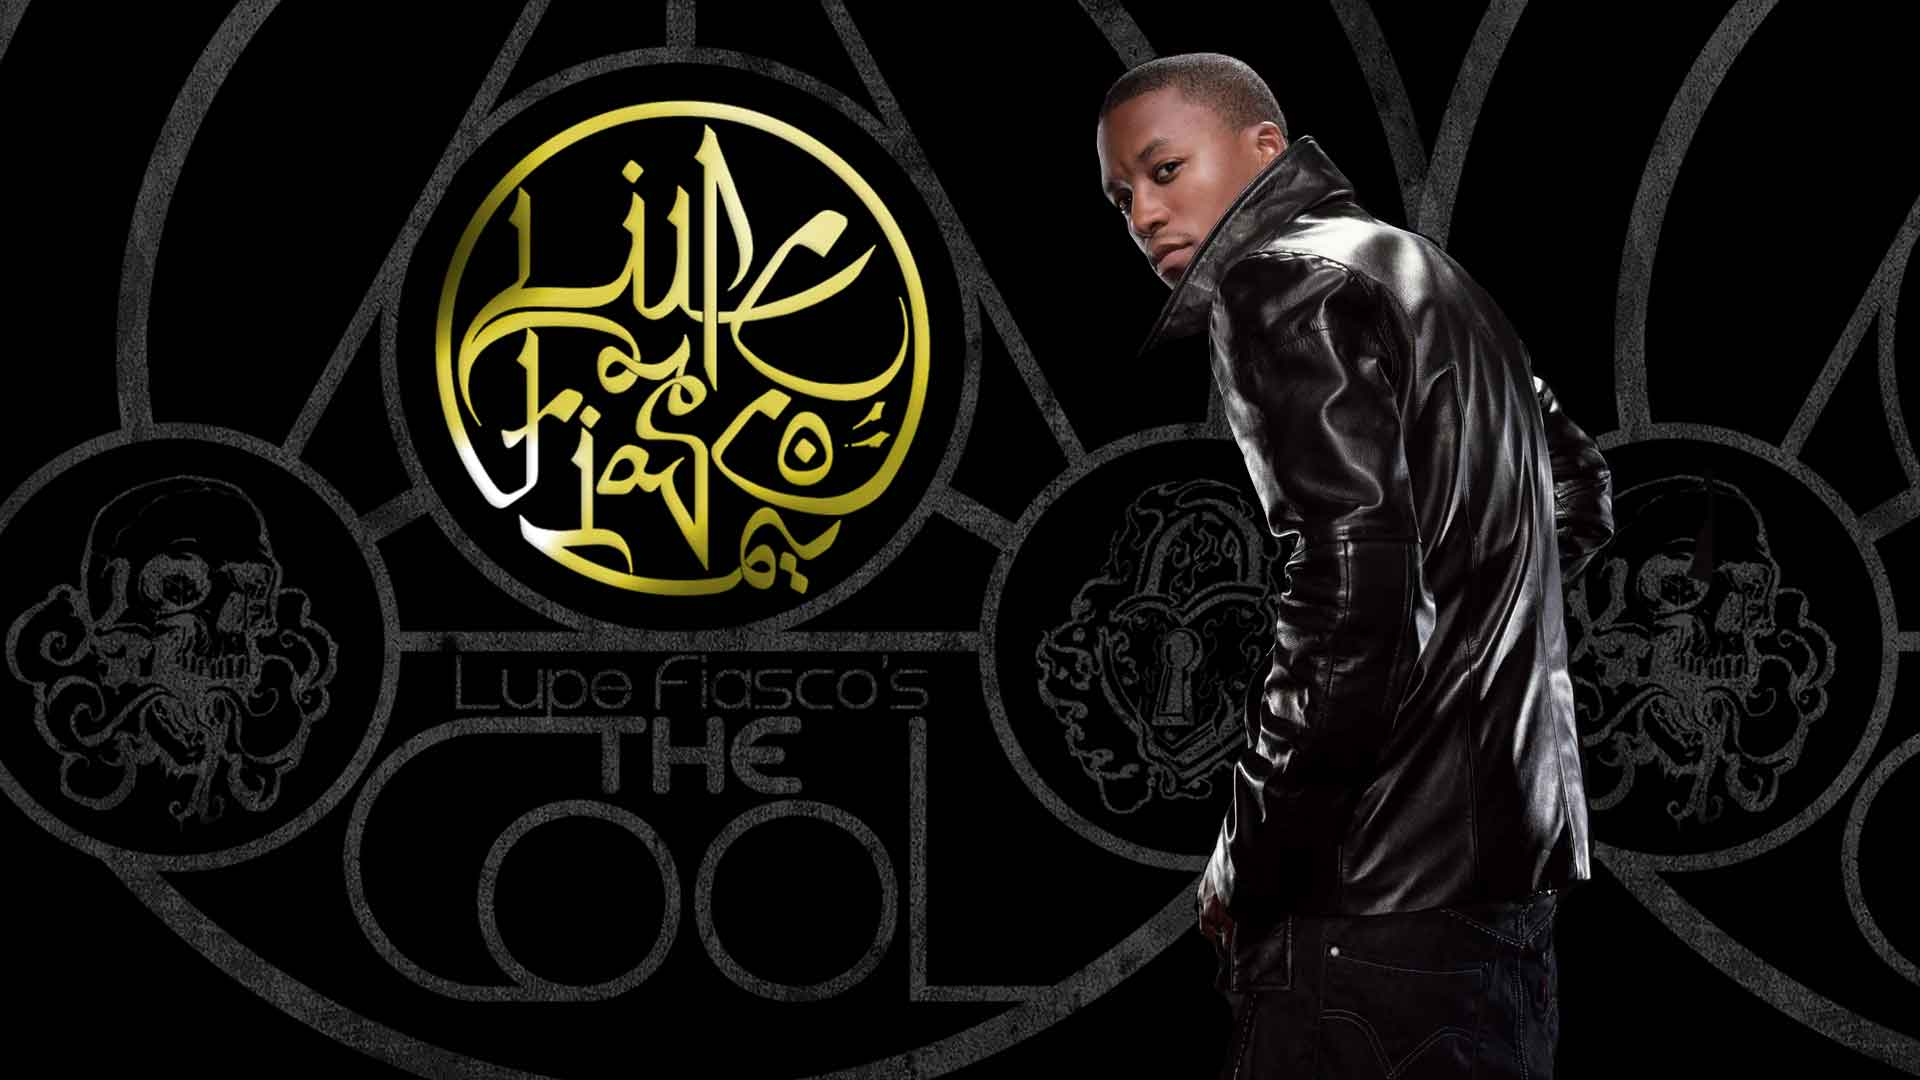 Interview lupe fiasco on hip hop jay z chicago and karate lupe fiasco the cool 2007 m4hsunfo